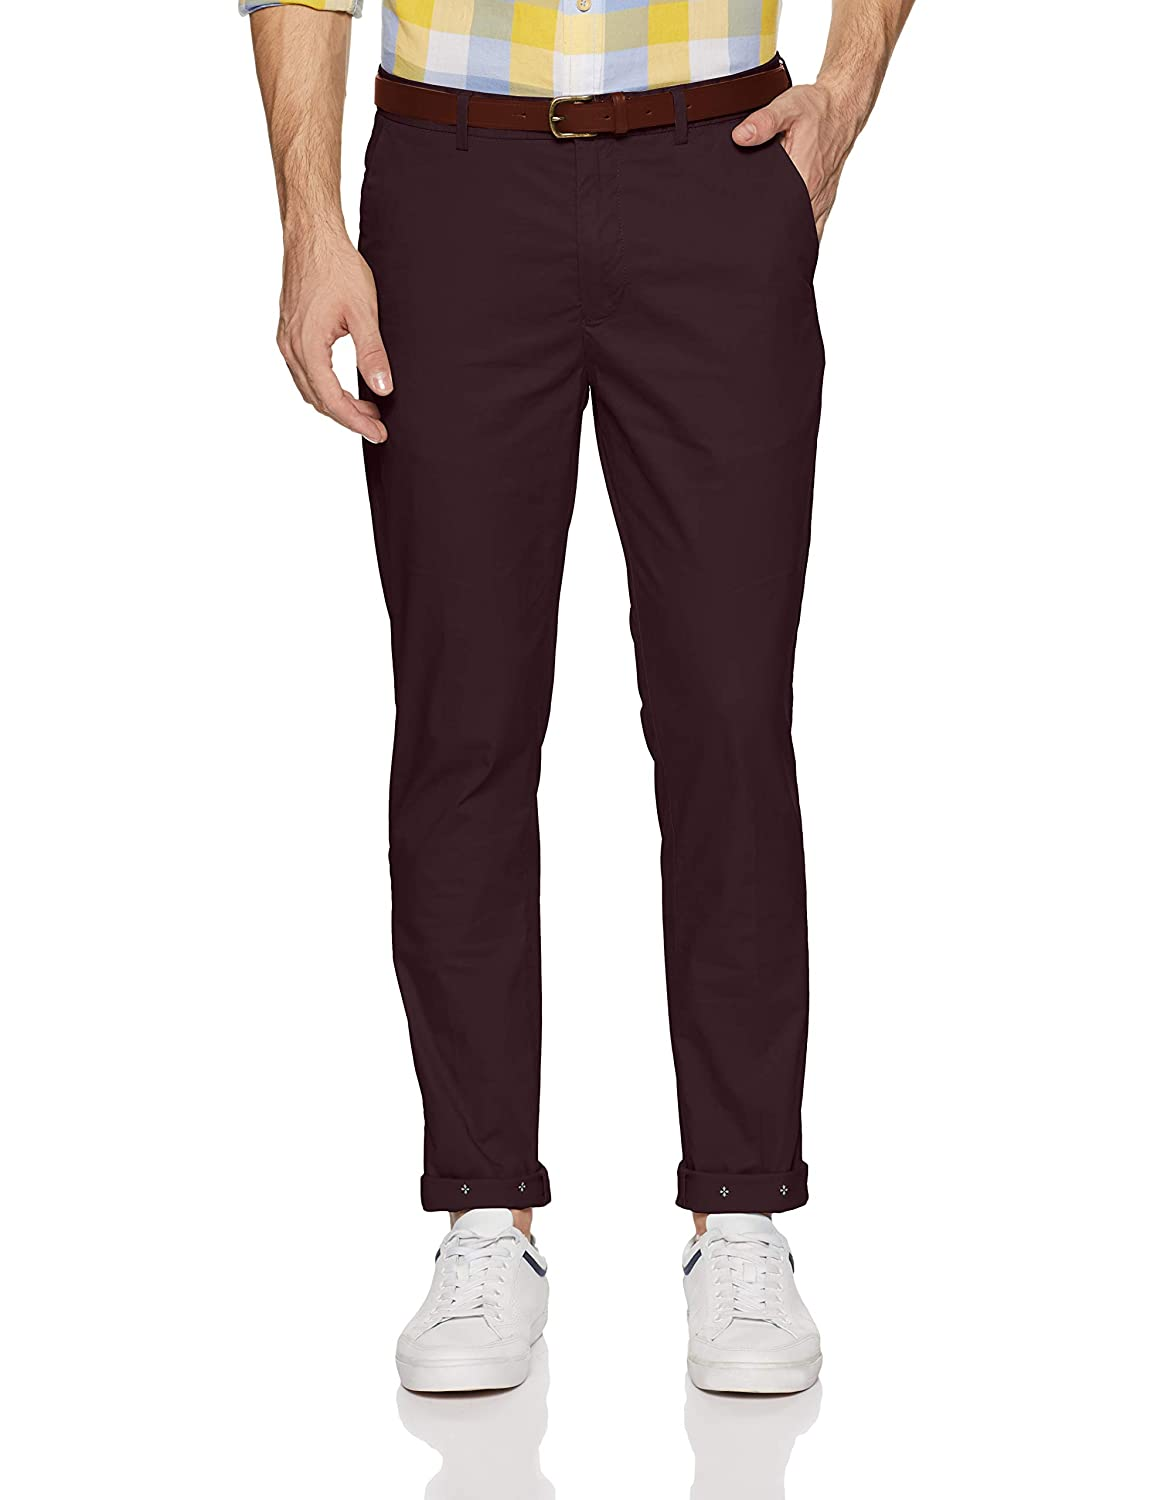 Scotch & Soda Mott-Classic Chino with Clean Outlook, Pantalones para Hombre